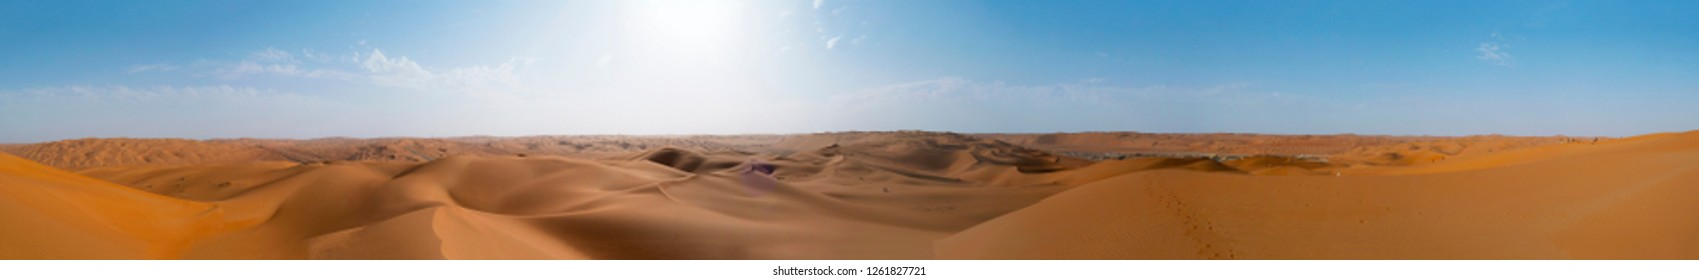 Sand dunes in the Empty Quarter (Rub' al Khali) Saudi Arabia